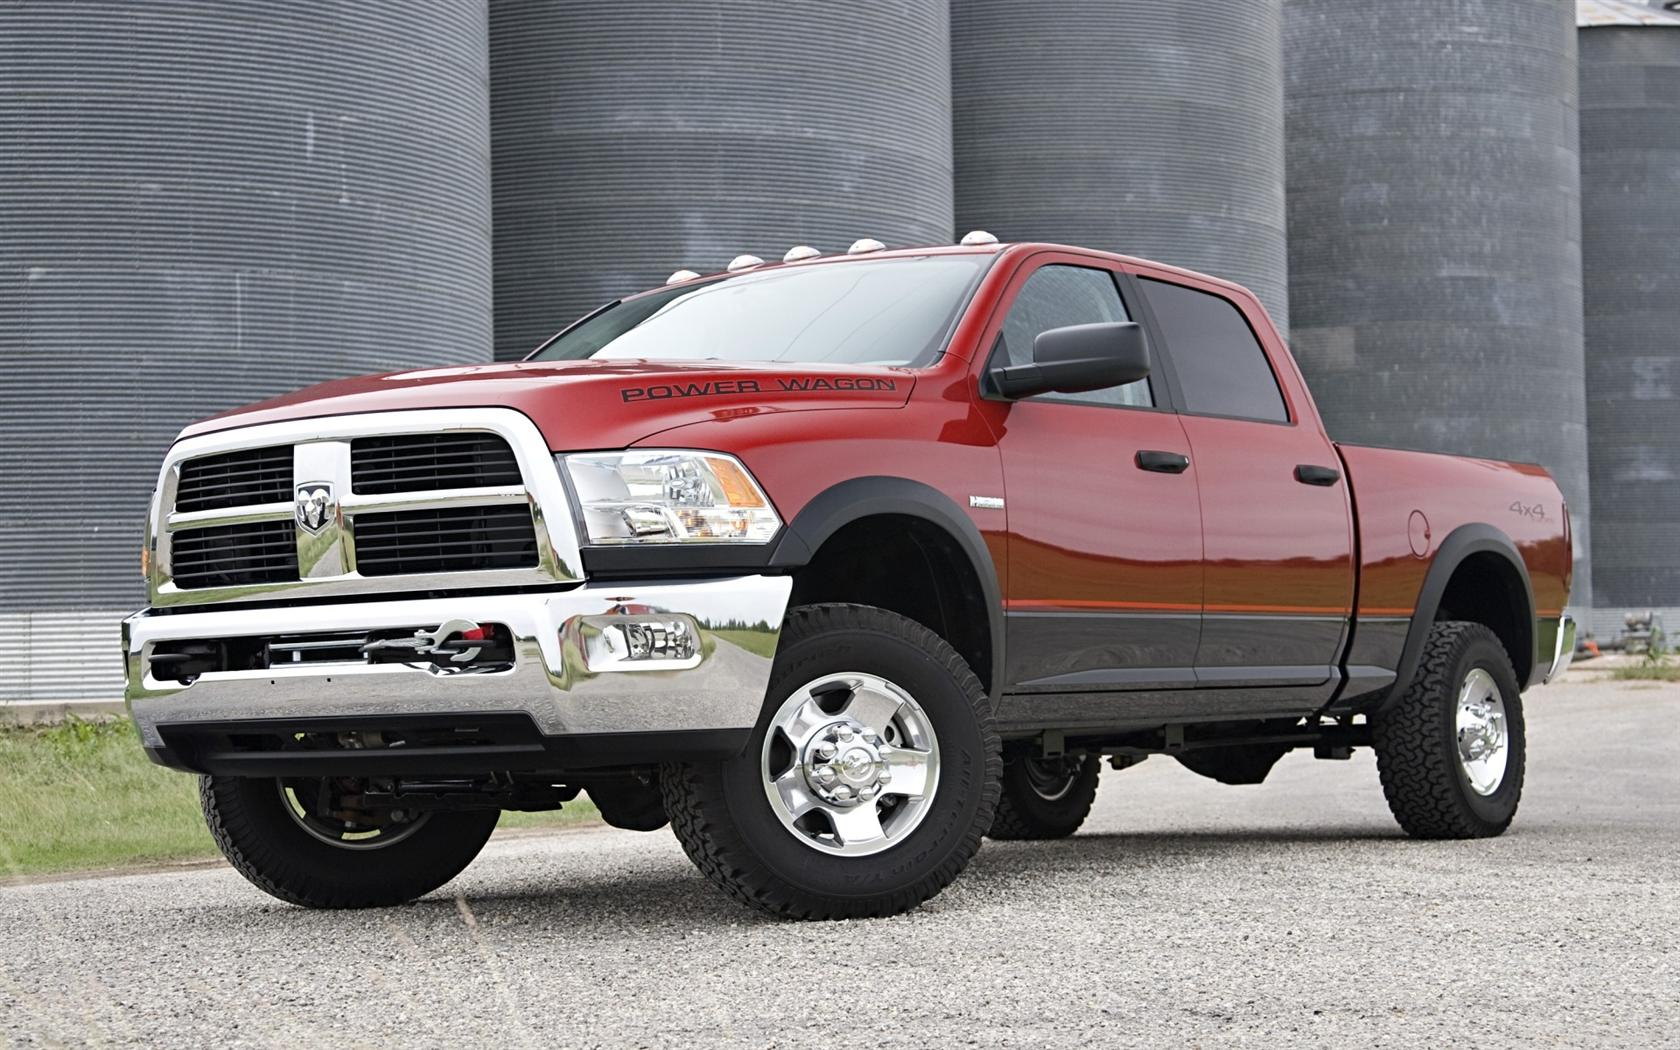 2010 dodge ram heavy duty 2500 3500 image. Black Bedroom Furniture Sets. Home Design Ideas